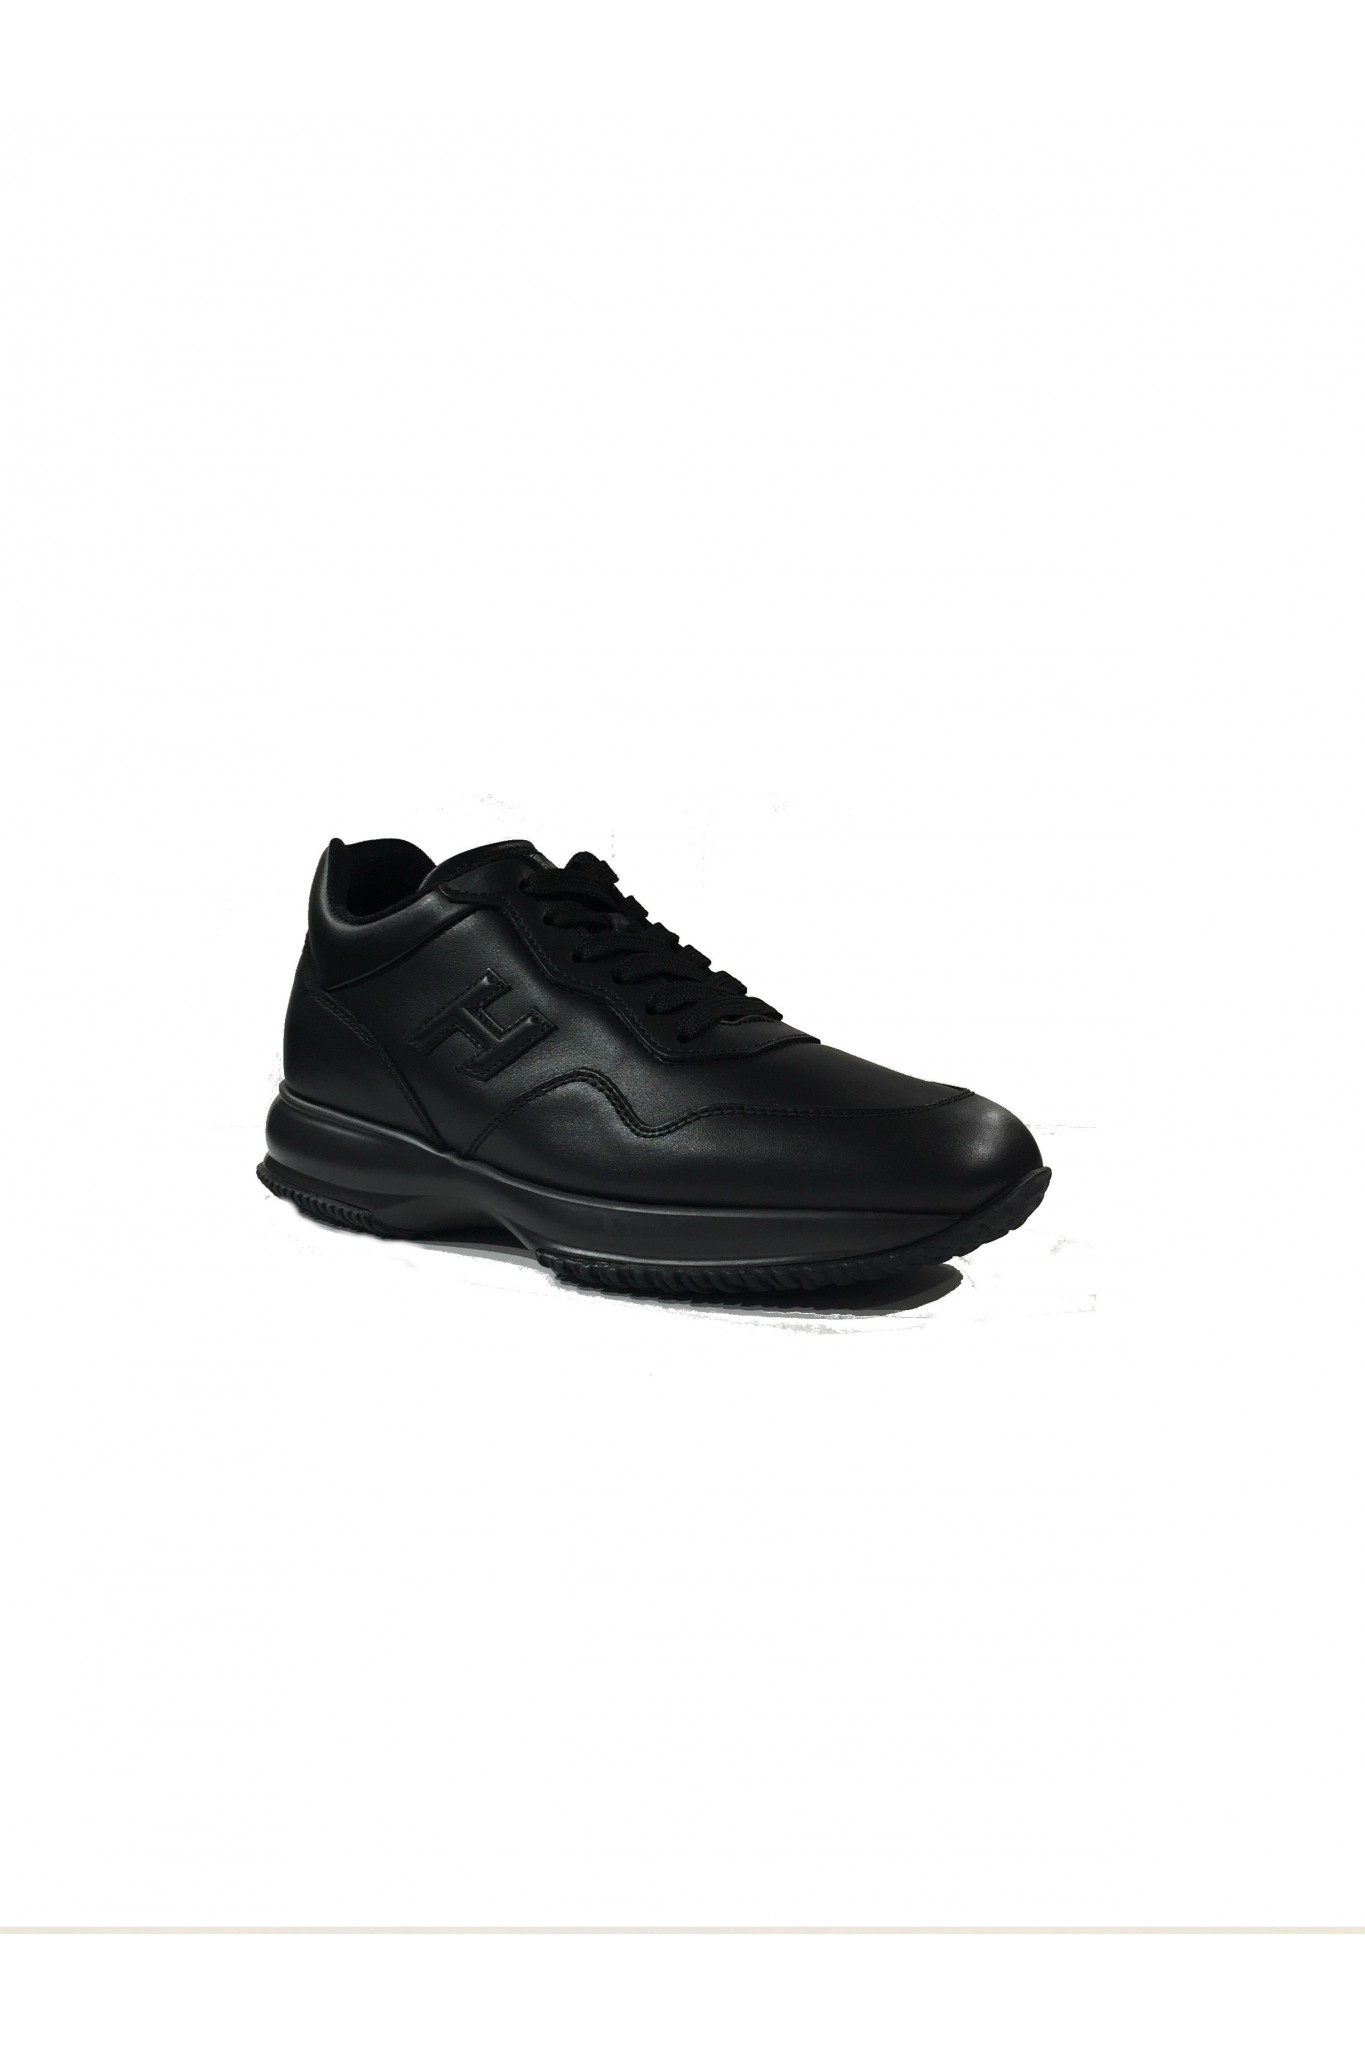 Black Hogan Interactive shoes d61ff6f6141